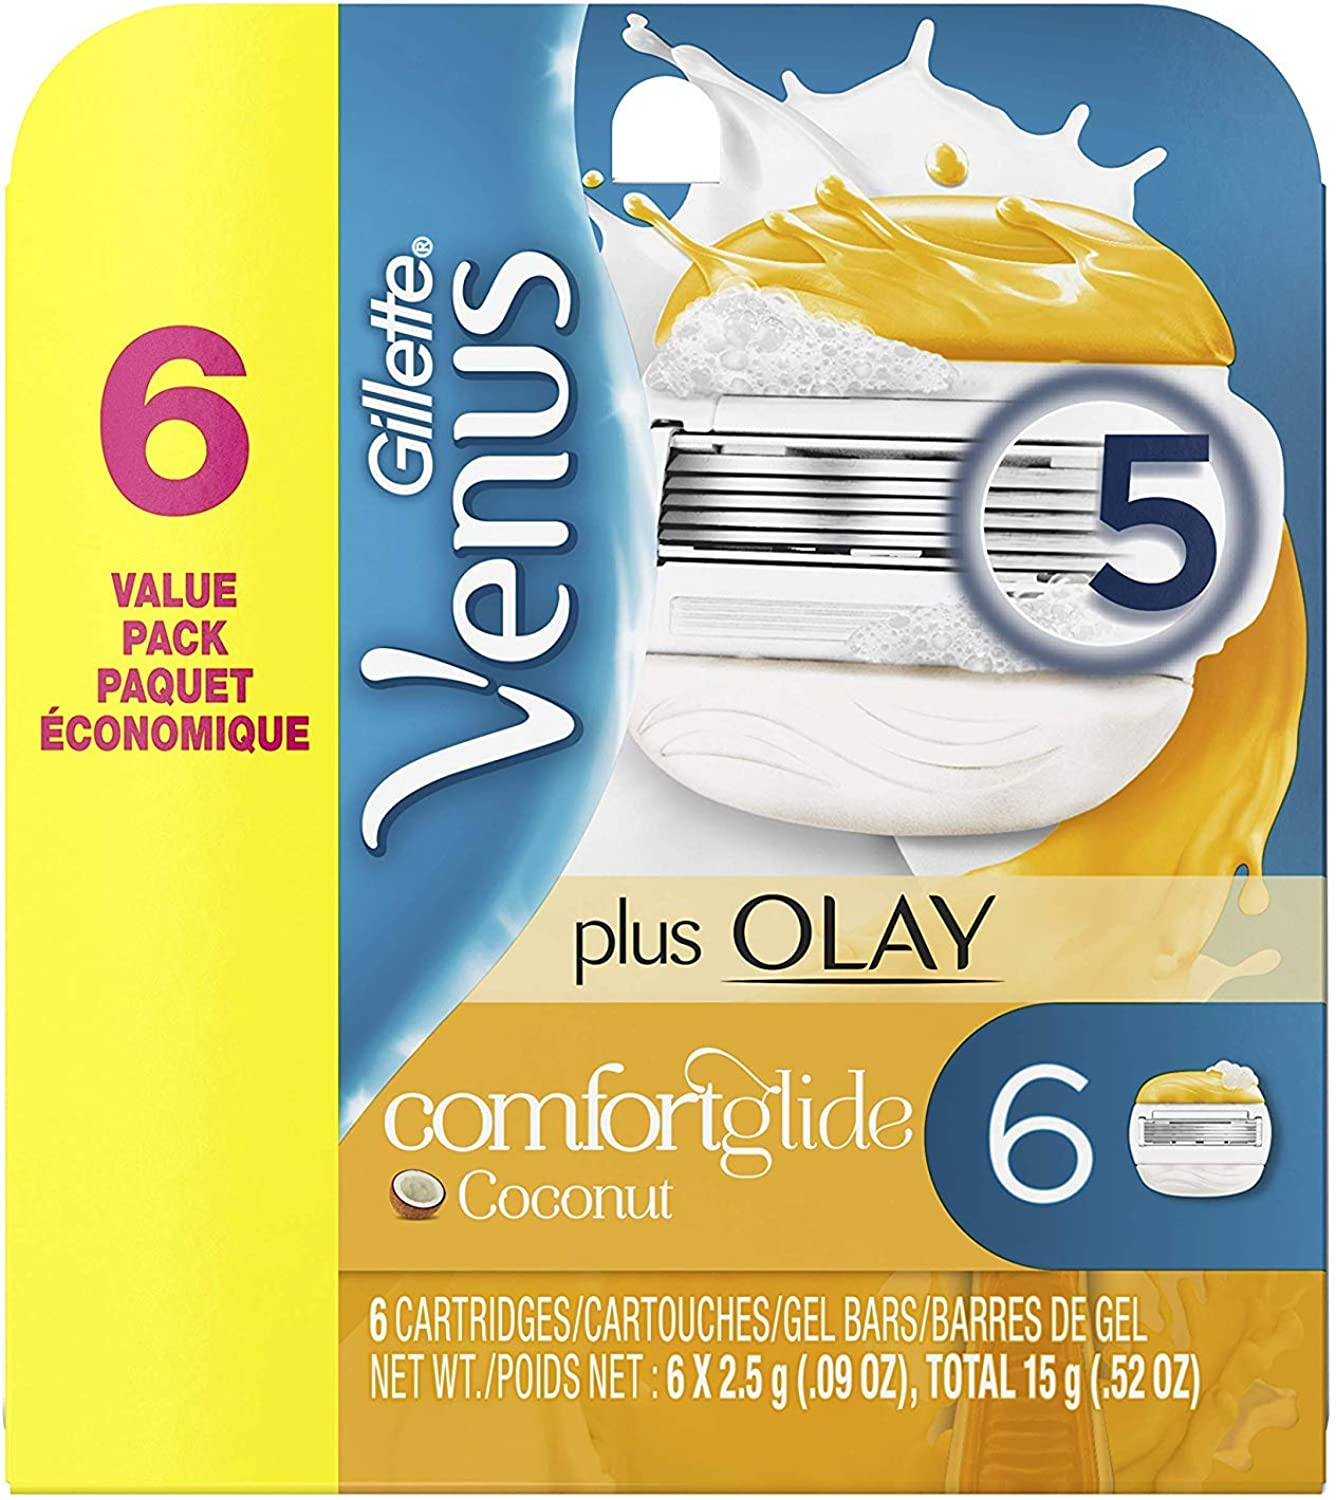 ComfortGlide Plus Olay Coconut Women's Razor Blades - 6 Refills (Packaging May Vary